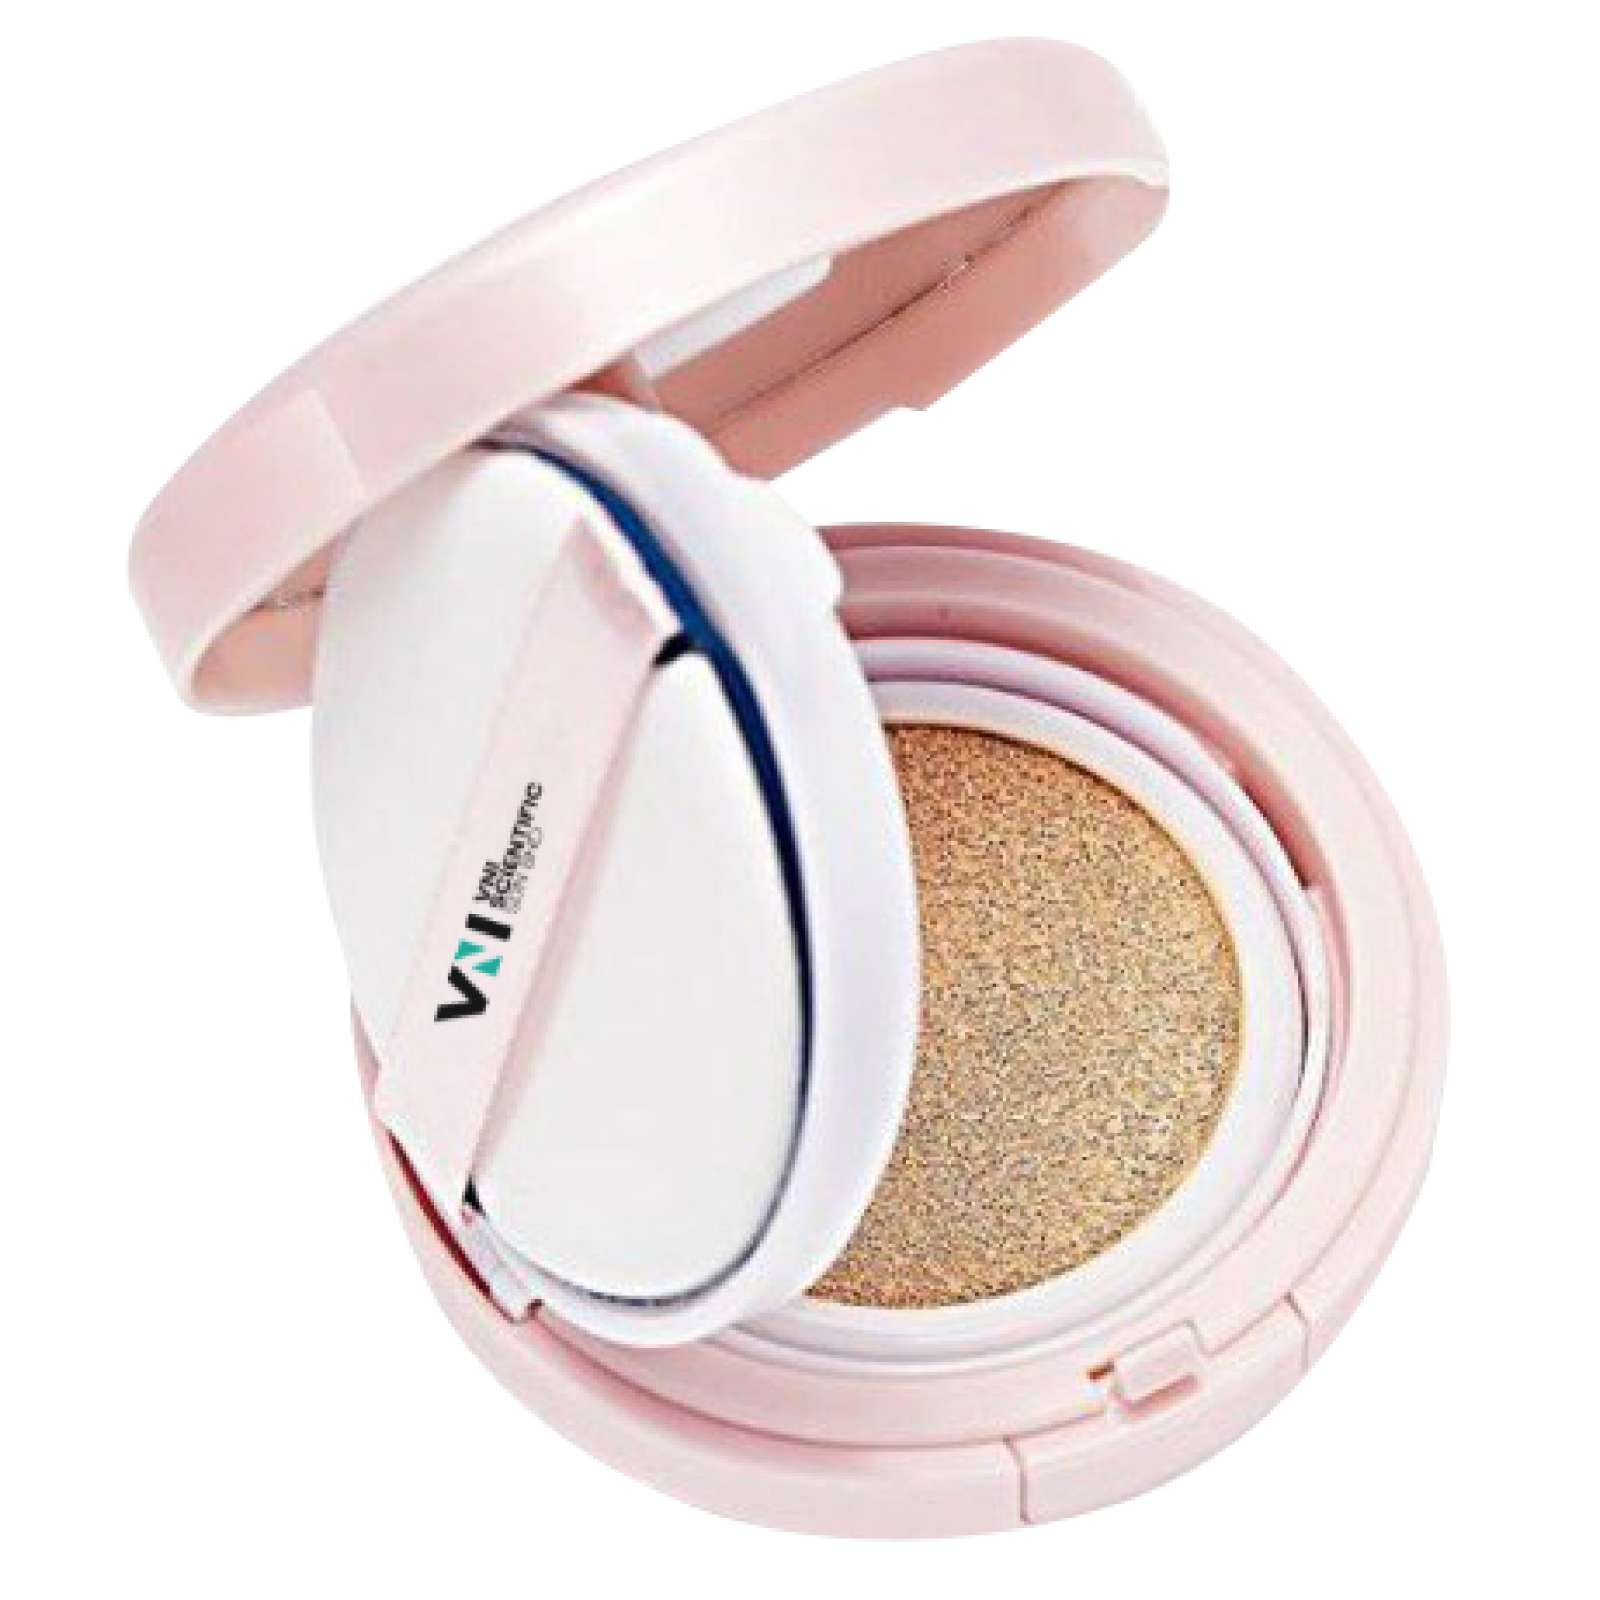 BB Cushion - Cosmetic OEM Manufacturer GMP and Halal Certified Malaysia.